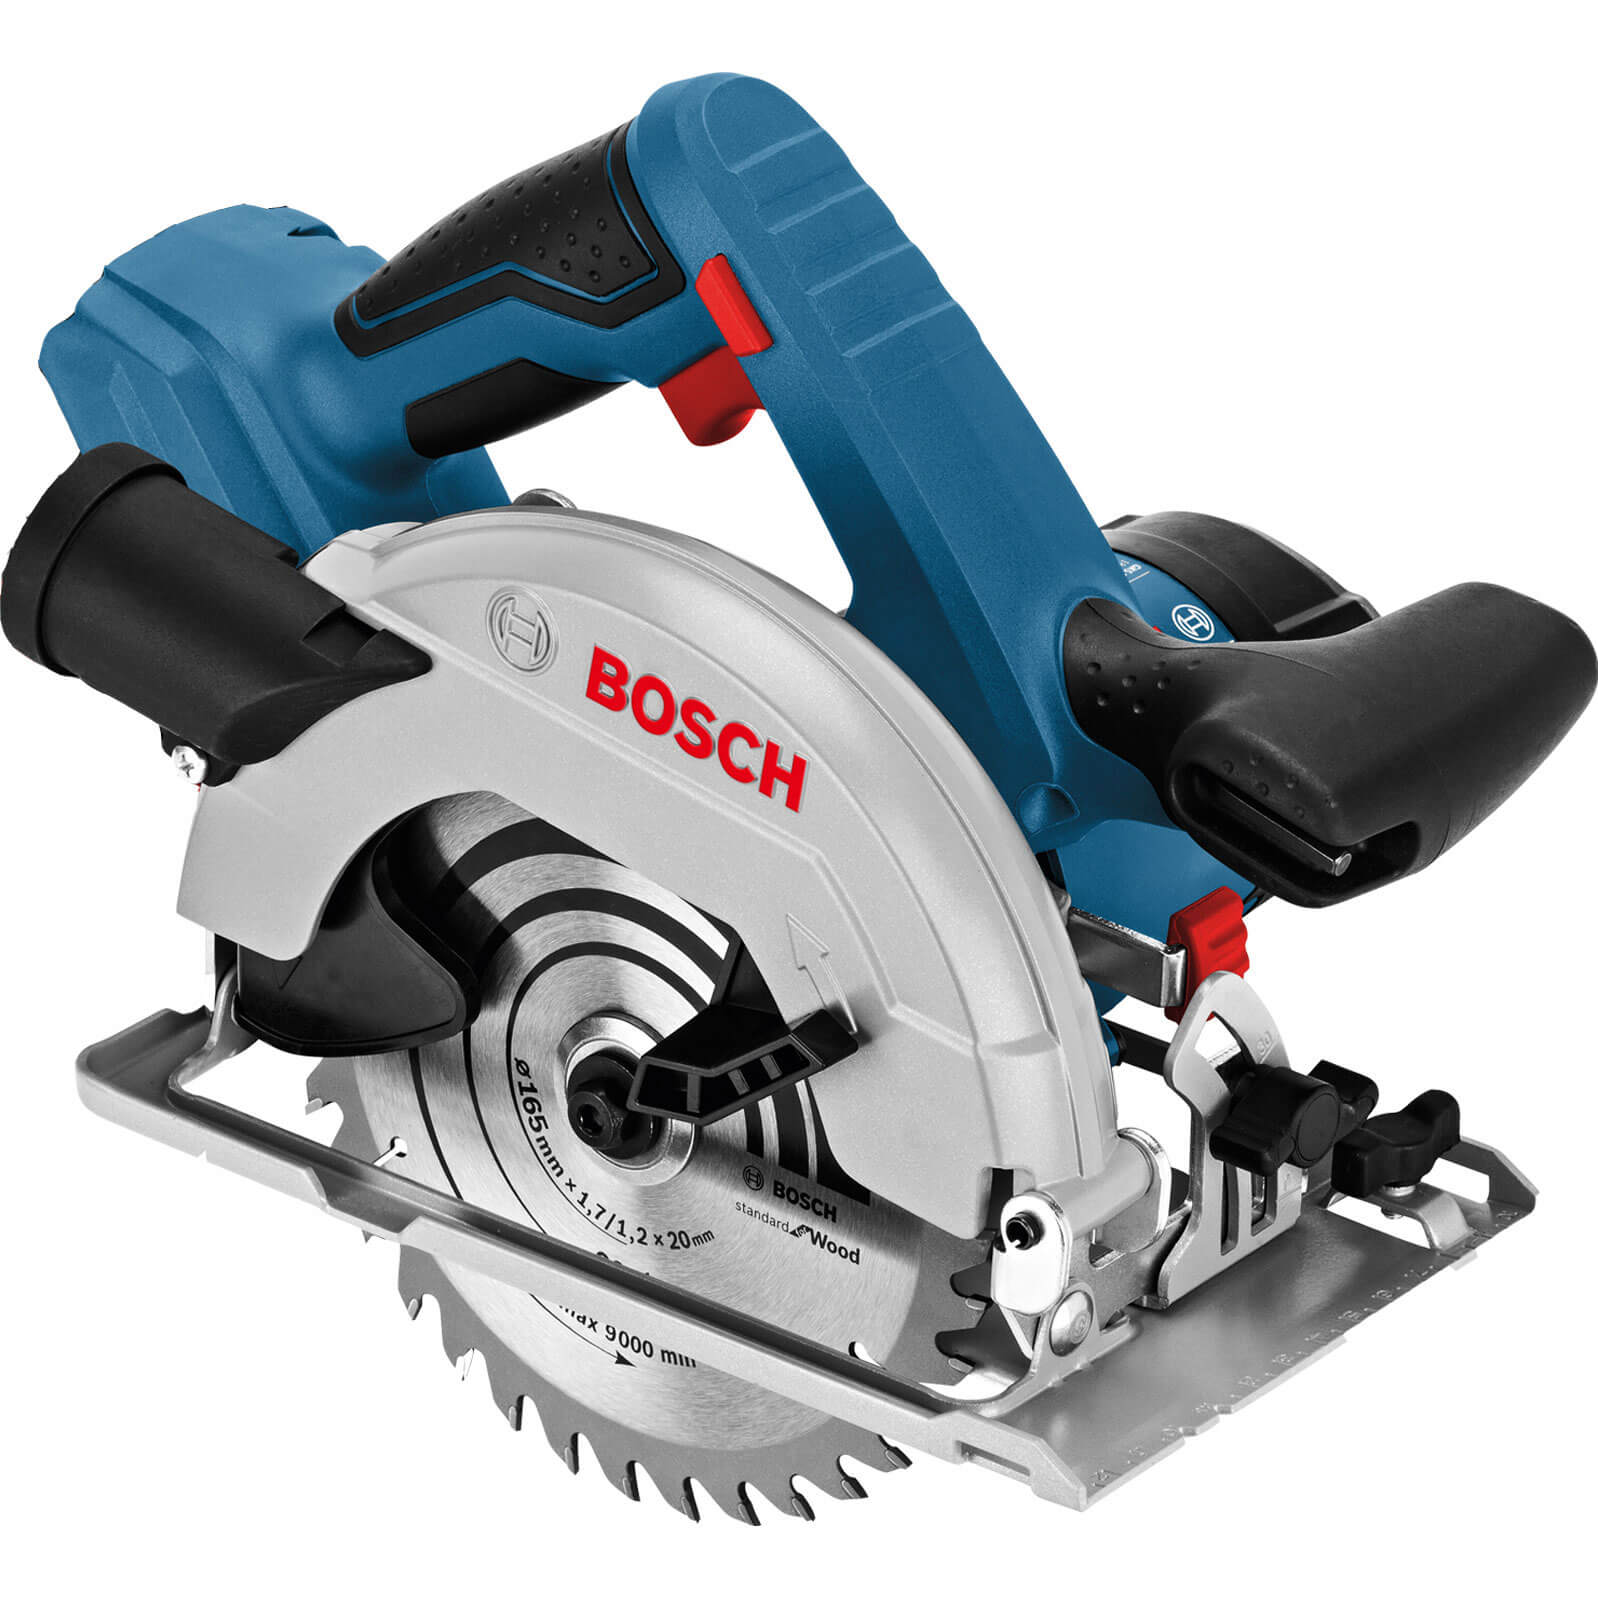 Image of Bosch GKS 18 V-57 Cordless Circular Saw No Batteries No Charger No Case